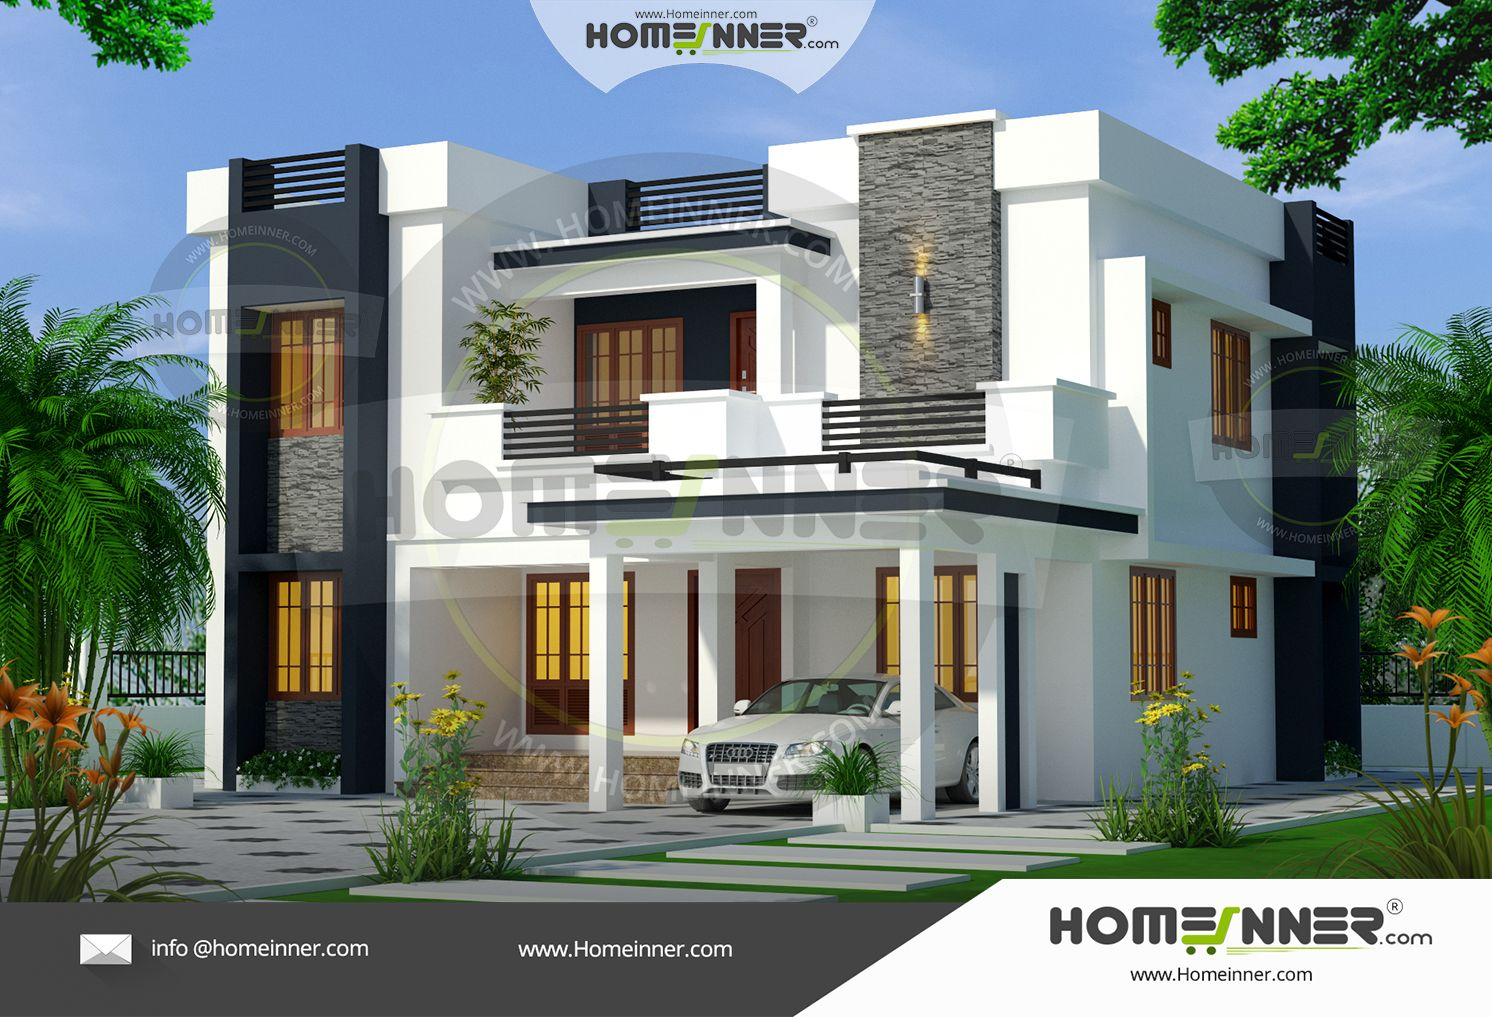 4 Bedroom Contemporary Ultra Modern House Plans 1900 Sq Ft Modern Contemporary House Plans Duplex House Design House Design Pictures